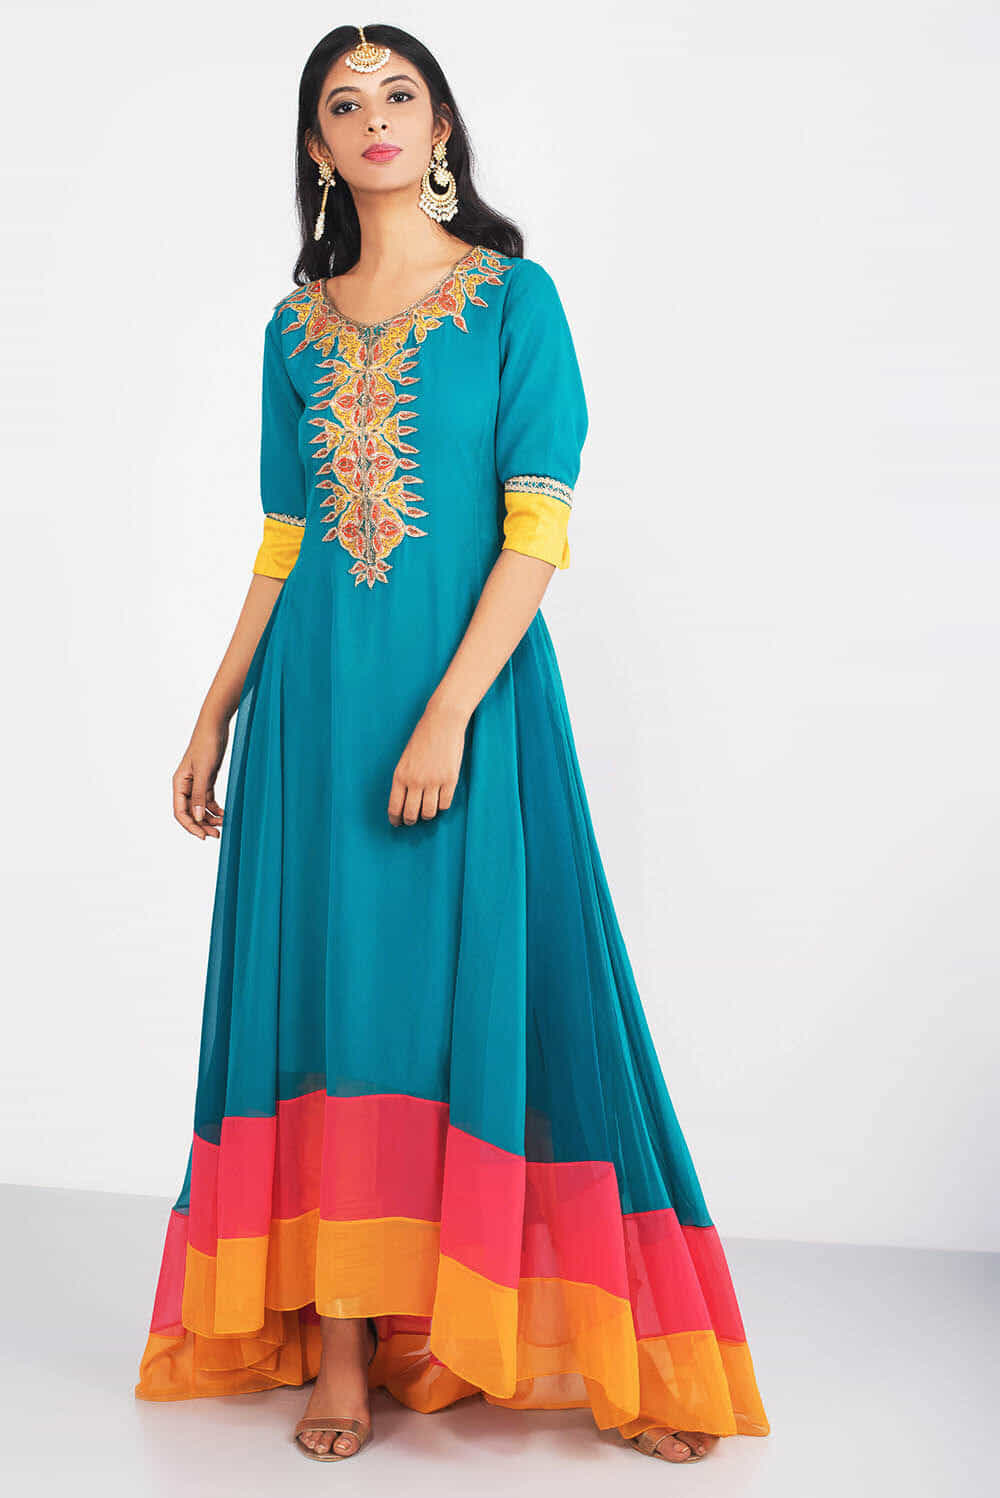 Rent Womens Designer Ethnic Wear for Wedding, Festive Occasion ...